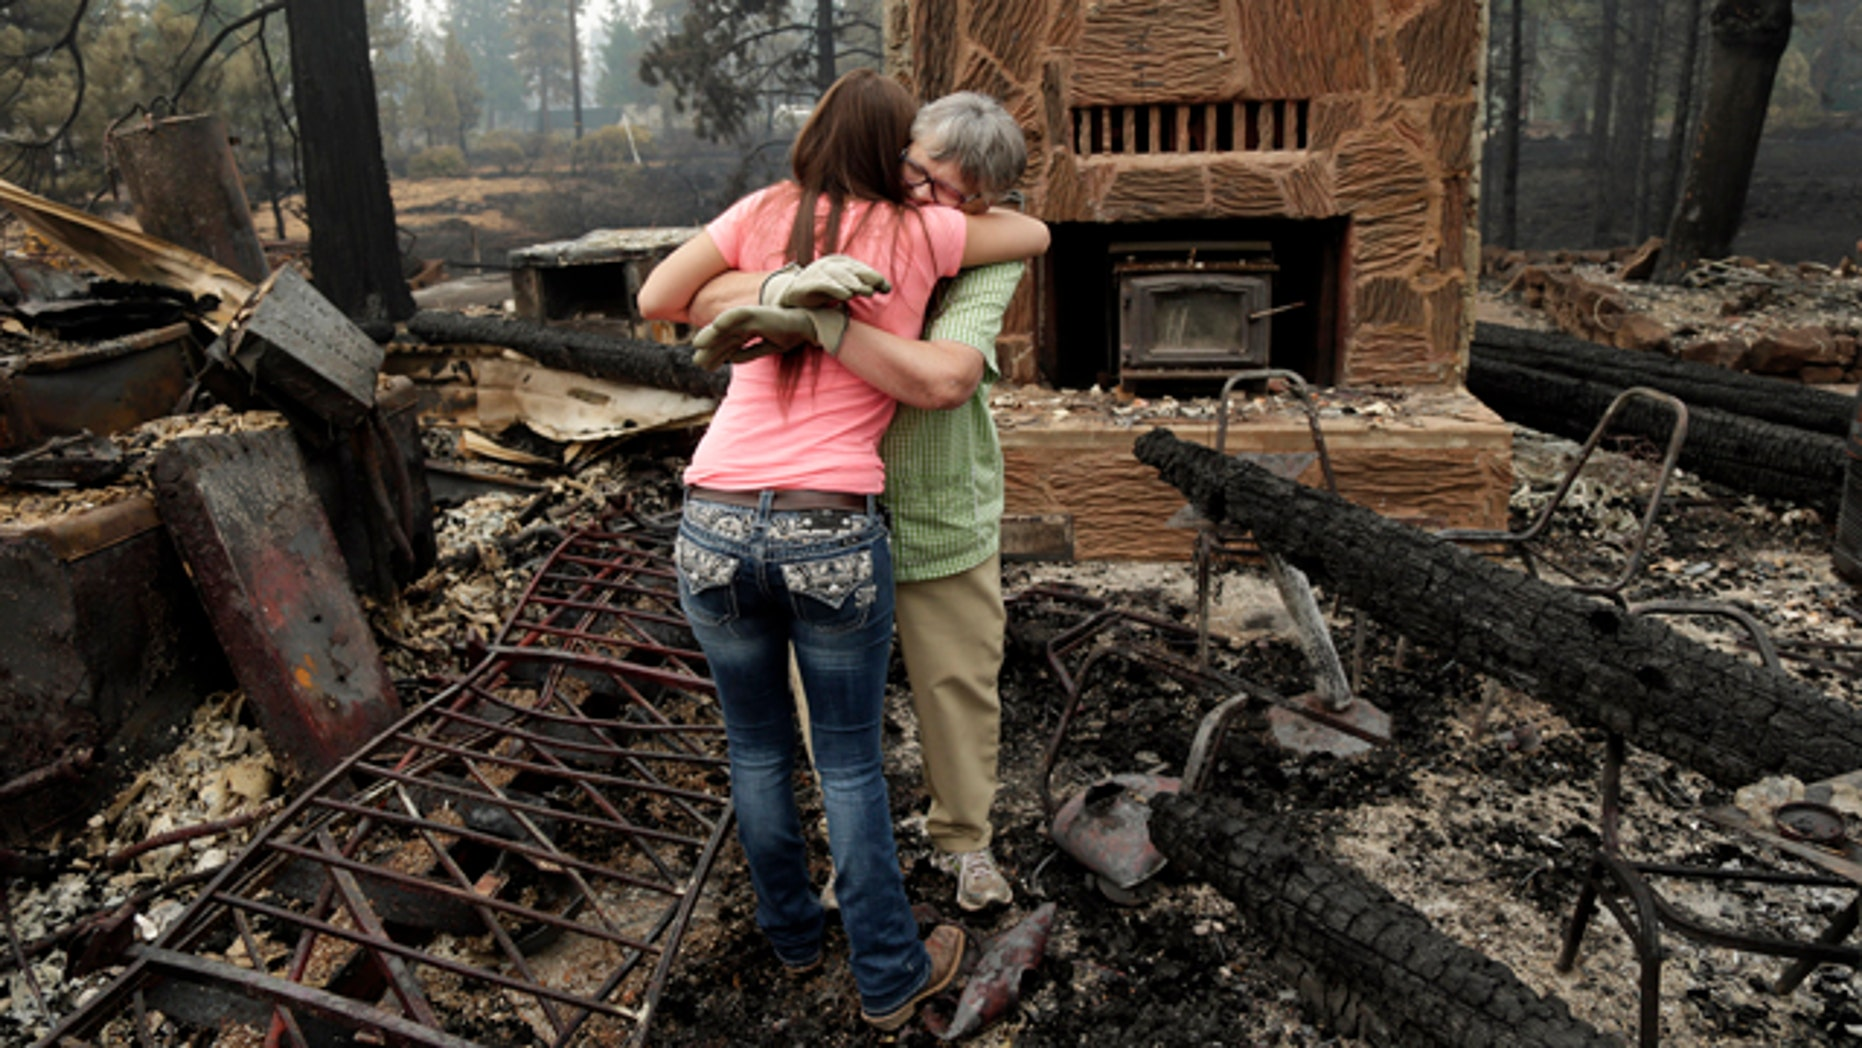 August 5, 2014: Donna Garner, right, embraces former employee Napua Gonsales-Merck while they sift through the remains of the Fireside Village, a restaurant and shop owned by the Garners for over 30 years, in the aftermath of the Eiler Fire in Hat Creek, Calif. (AP Photo/Marcio Jose Sanchez)